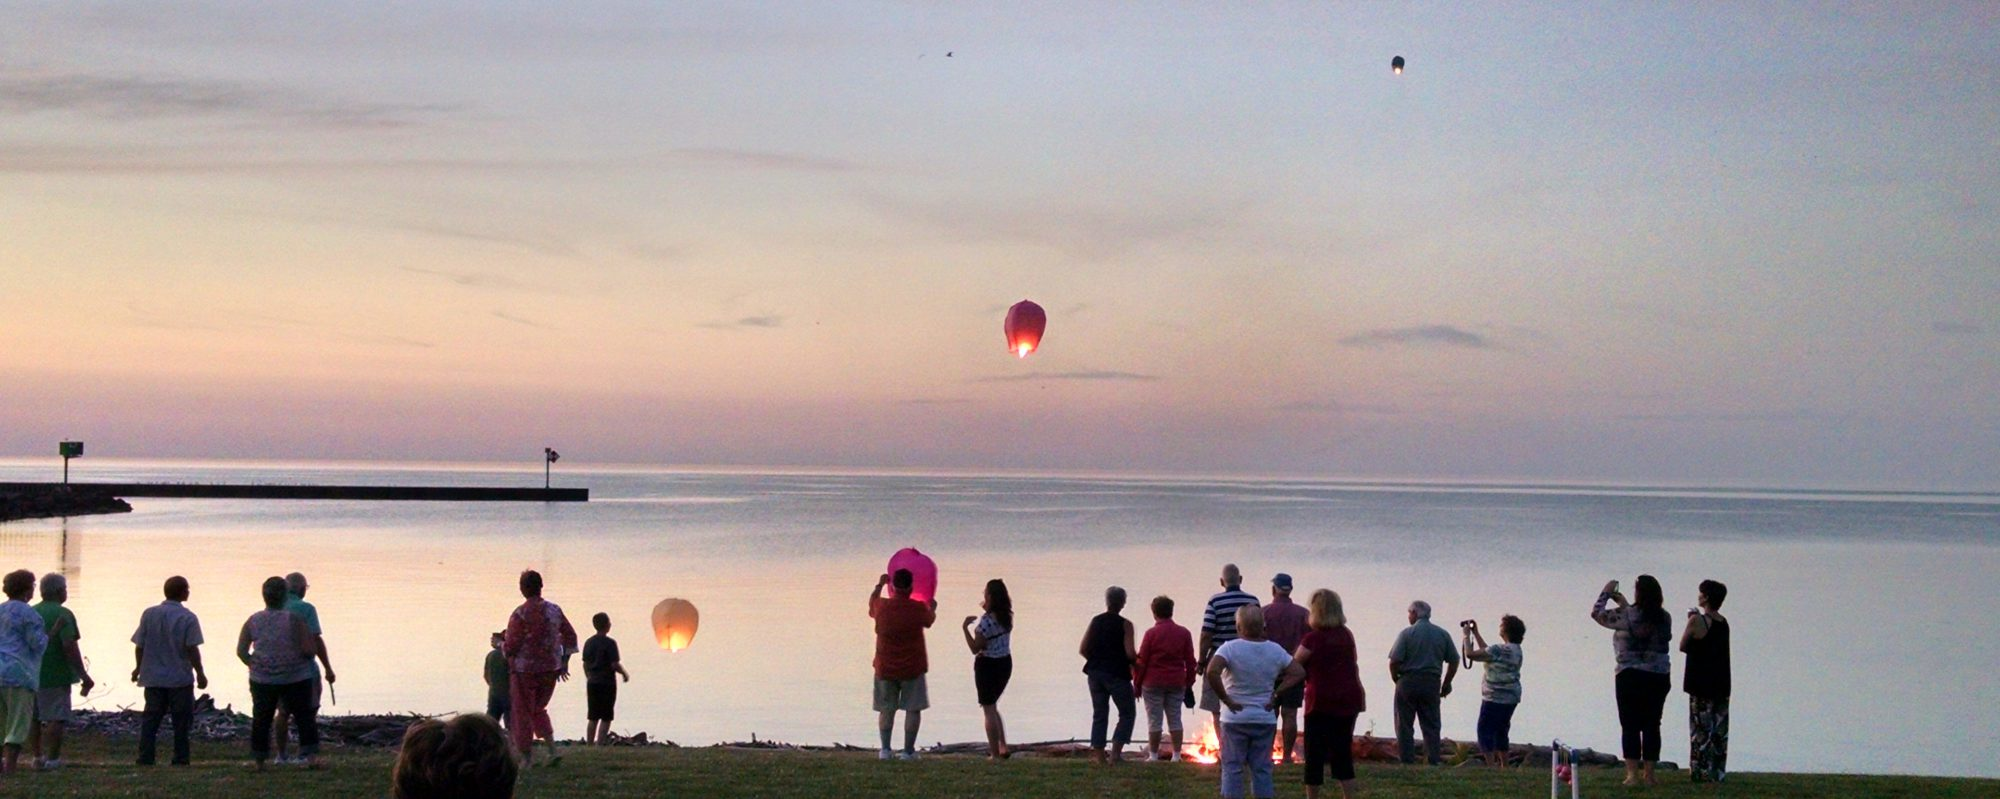 Summer Solstice lantern launch. Photo courtesy of Lynne Menz Designs